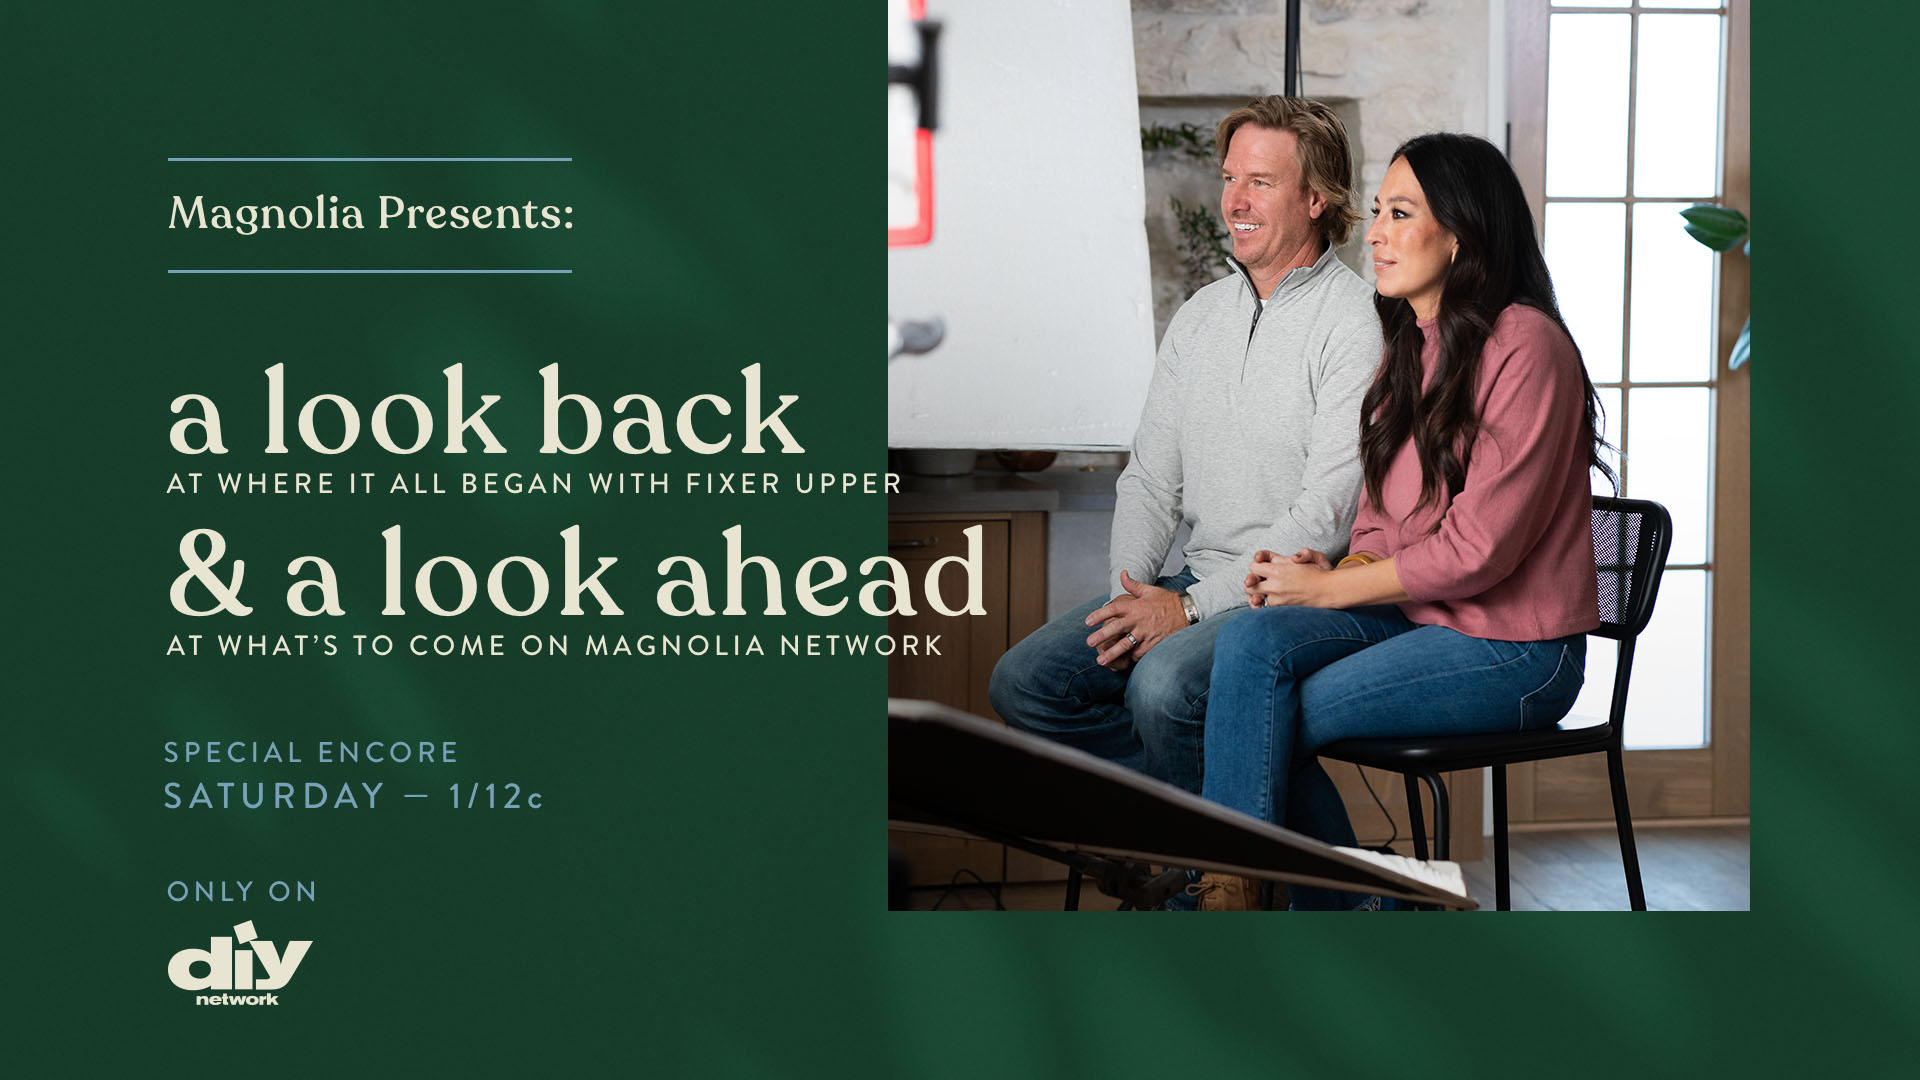 Magnolia Presents: A look back at where it all began with Fixer Upper & a look ahead at what's to come on Magnolia Network - A Special Encore On DIY Network: Saturday, May 16 at 1p|12p CT